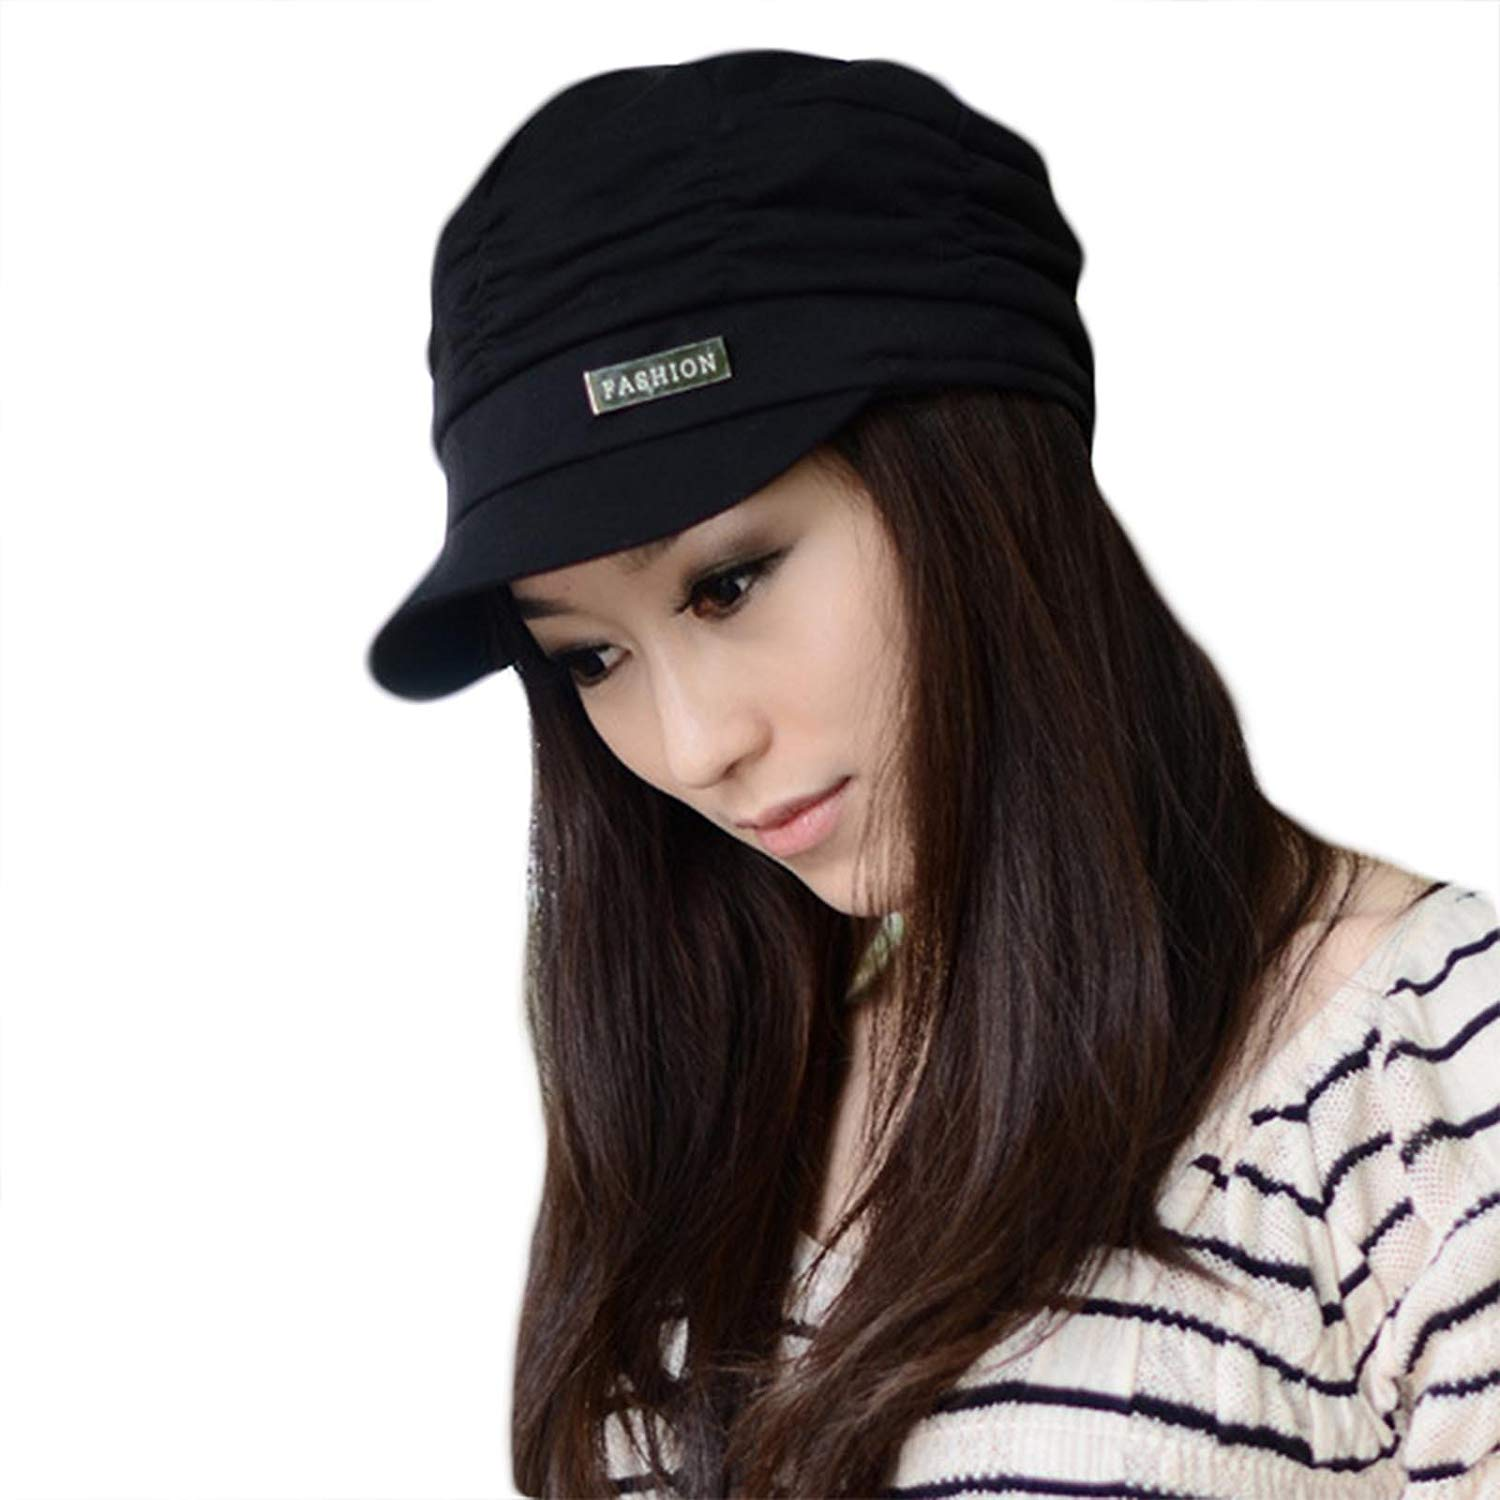 98dc14f10ff LOCOMO Women Girl Fashion Design Drape Layers Beanie Rib Hat Brim Visor Cap  FFH010BLK Black